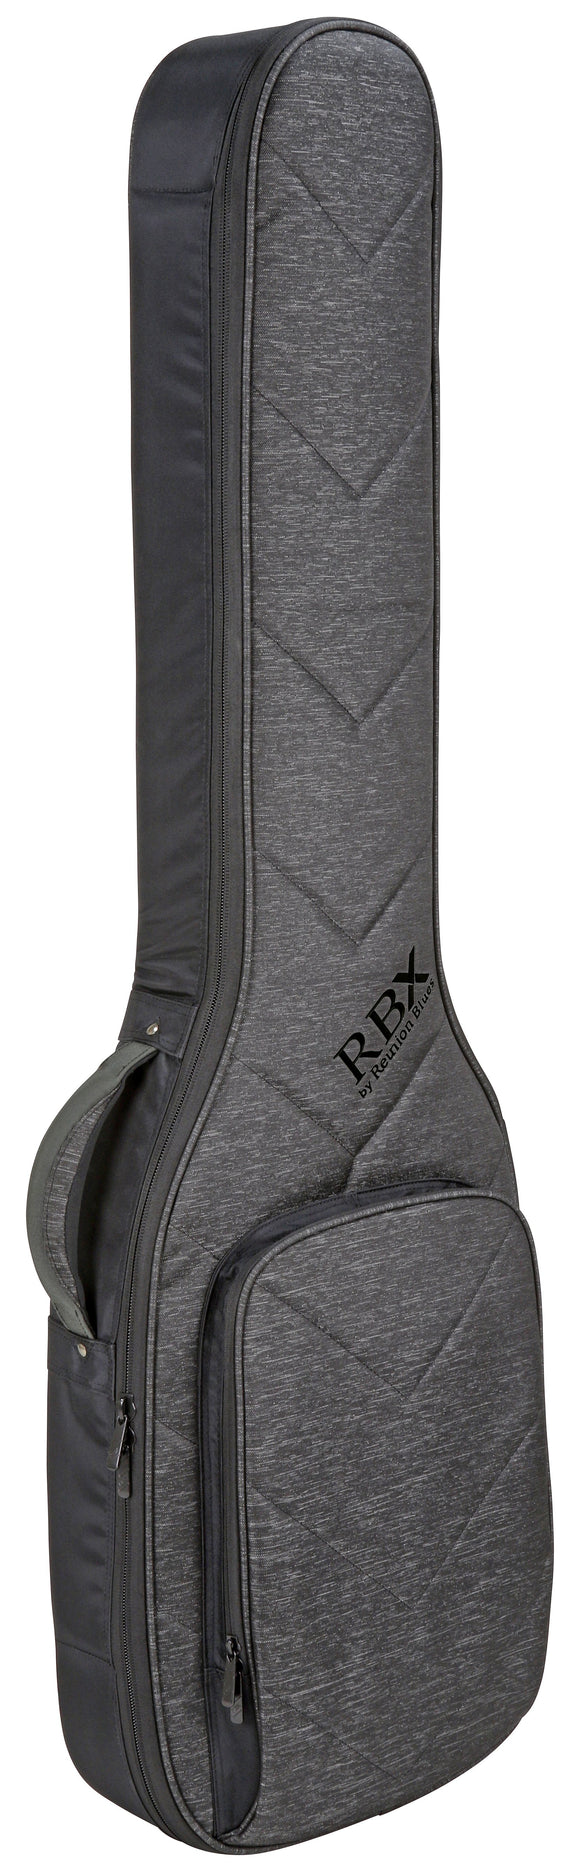 Reunion Blues RBX Oxford Electric Bass Guitar Gig Bag - Dynamic Music Distribution